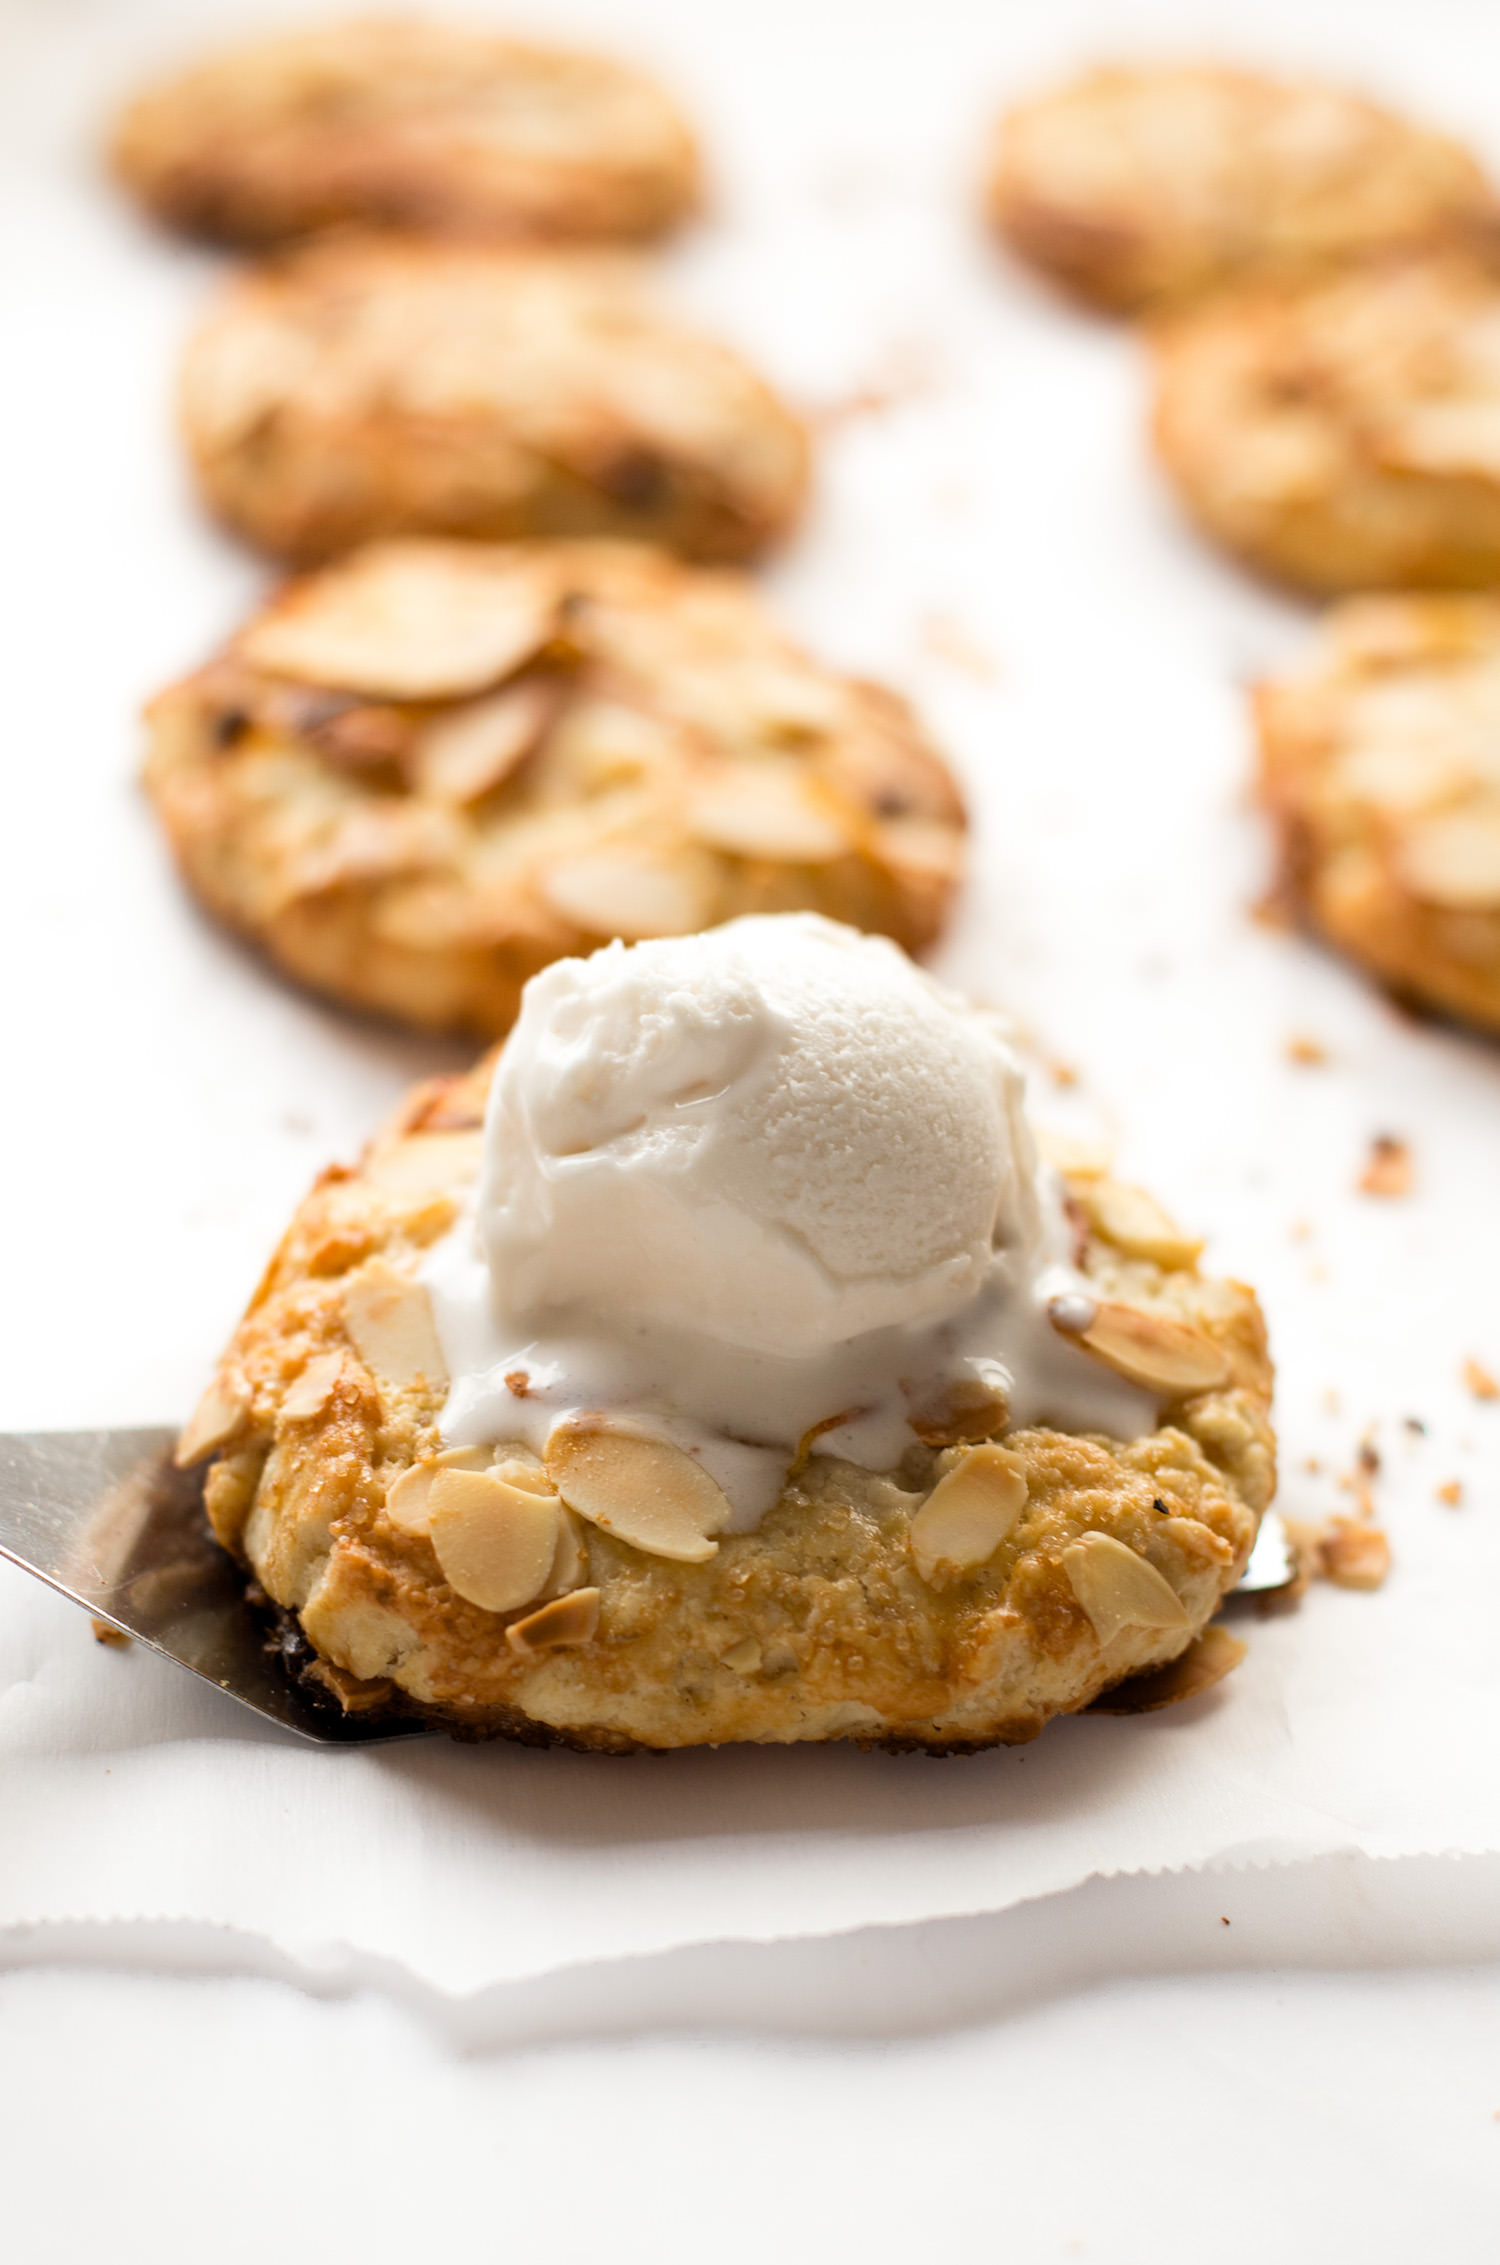 Mini Almond Pear Galettes: beautiful, mini galettes spread with an almond filling, filled with juicy pears, and topped with slivered almonds. | TrufflesandTrends.com